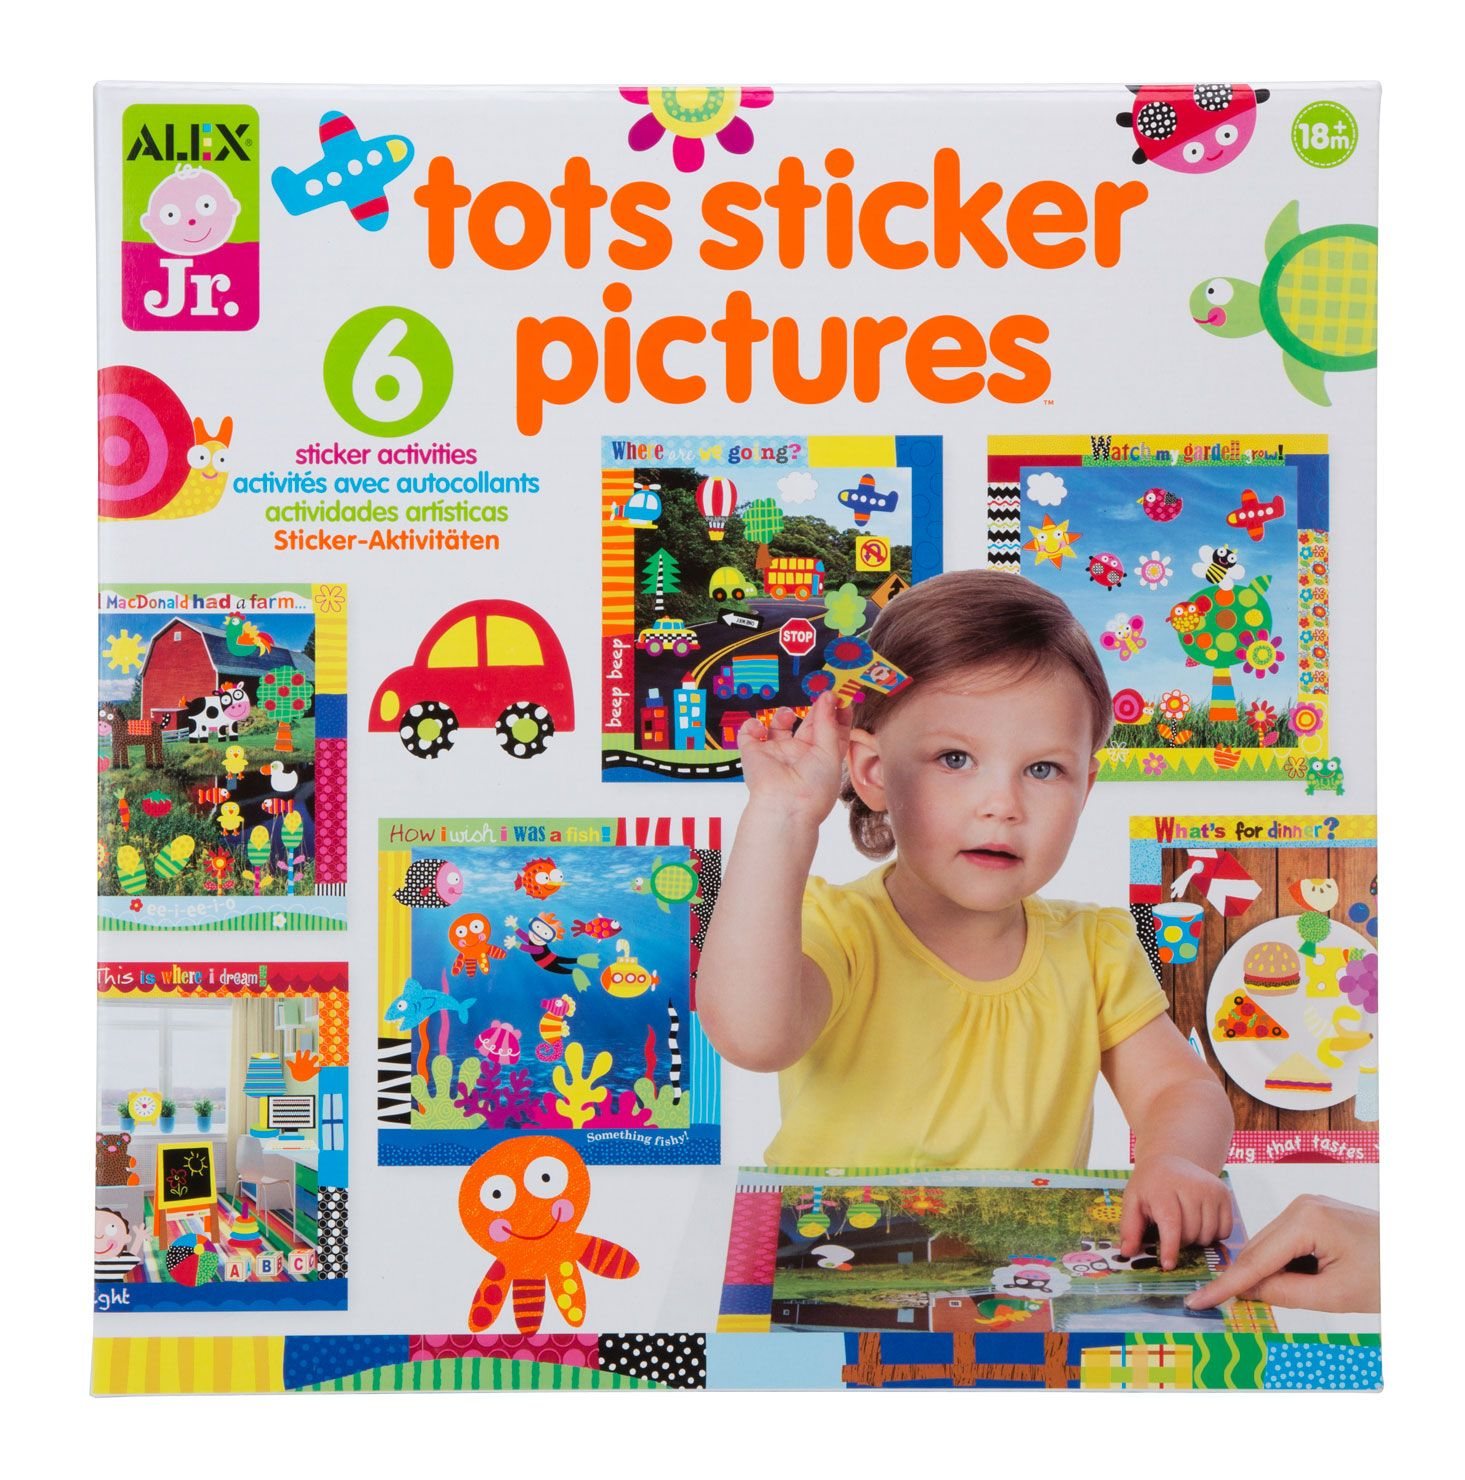 Toys for tots images  Peel stick and create little works of art with Tots Sticker